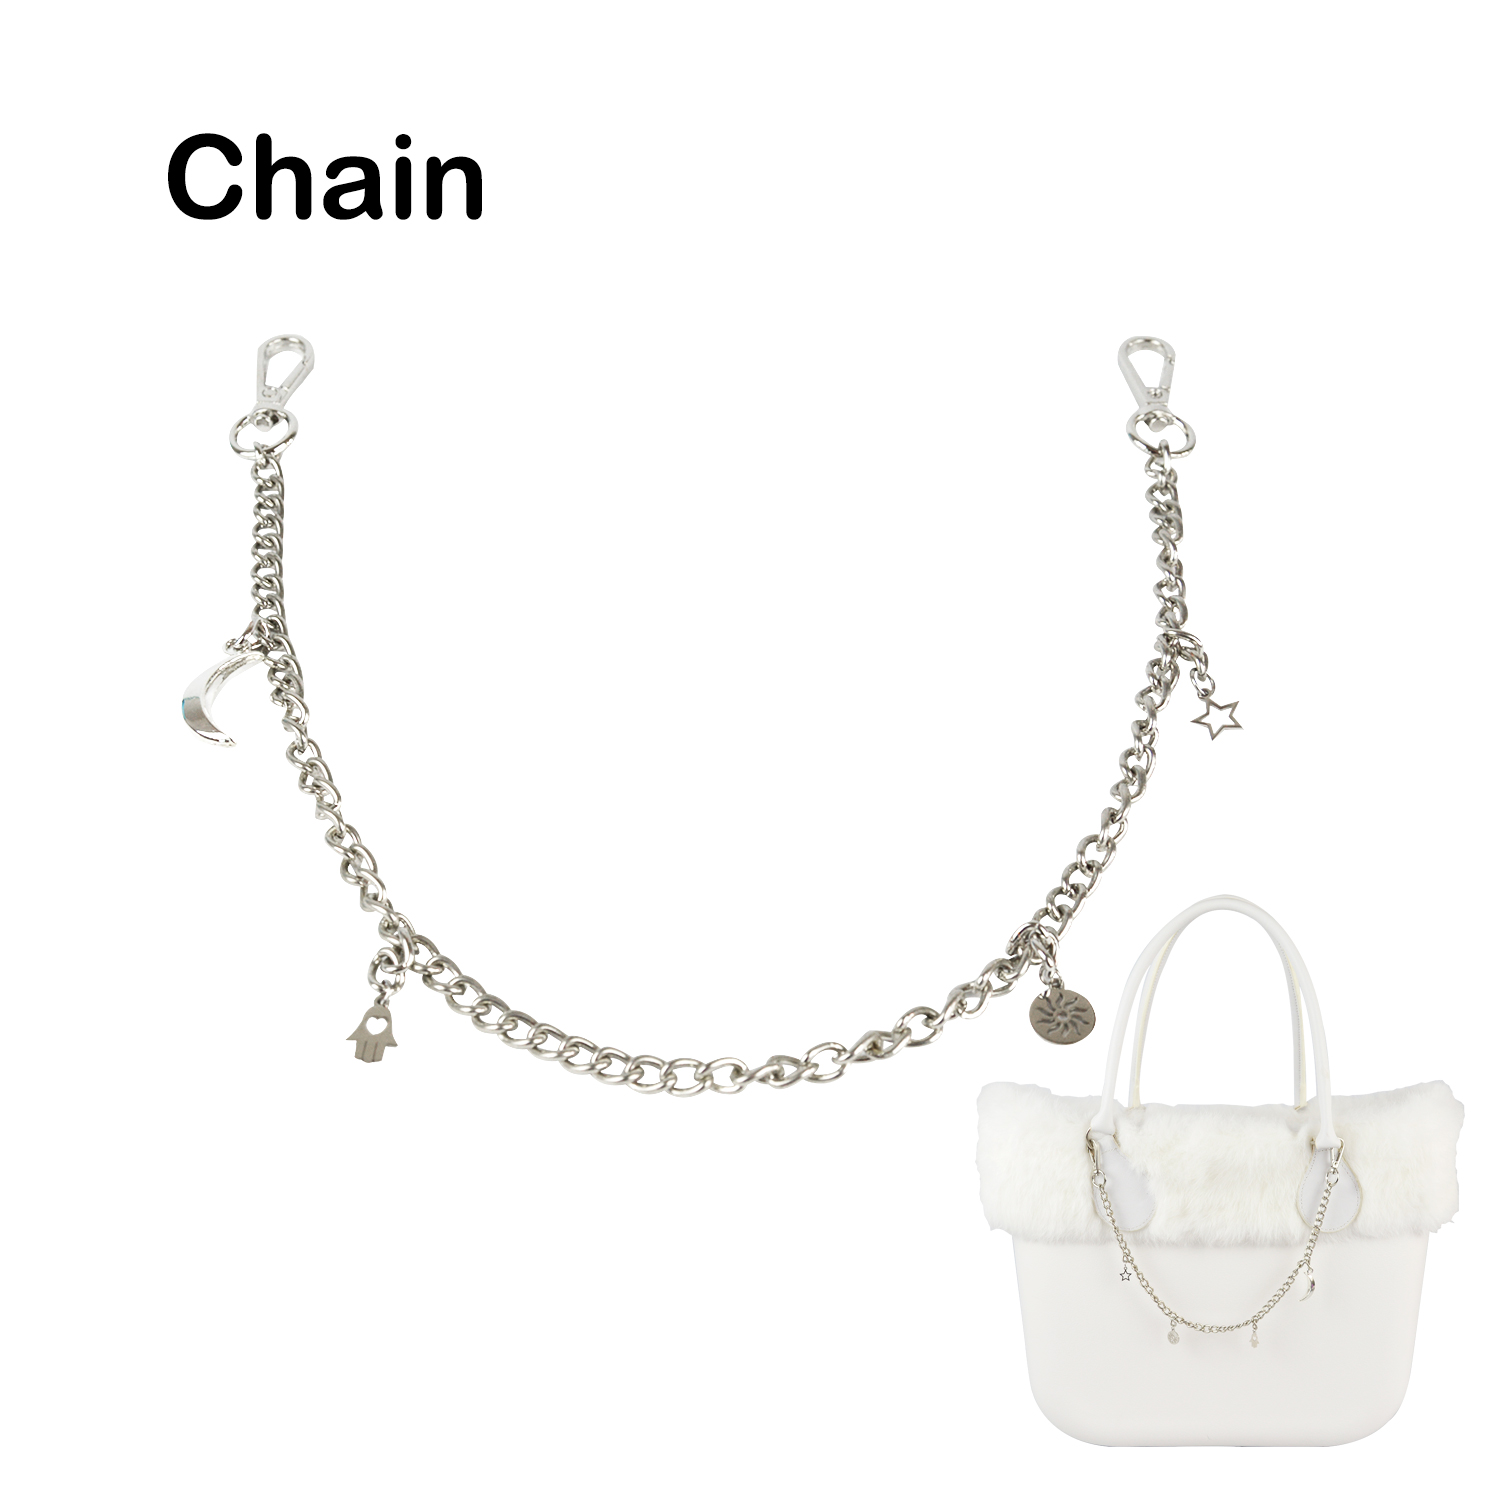 2018 New Metal Silvery Chain Straps For O Pocket Classic Mini O Bag Strap Chain For EVA Huntfun Bag Classic Mini Obag Opocket